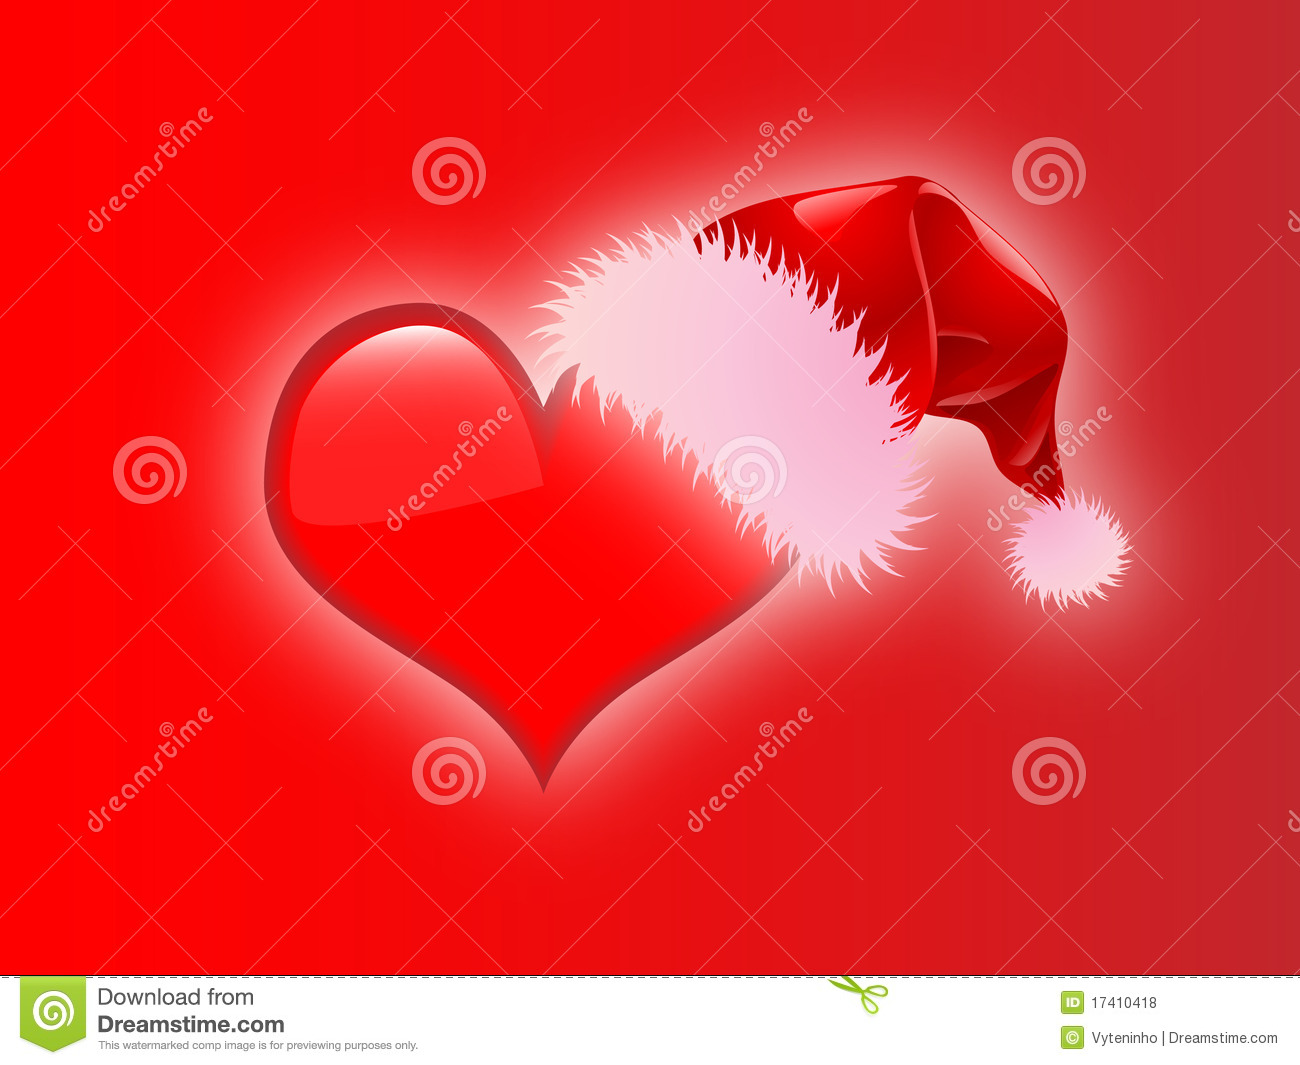 Christmas Heart.Christmas Heart With Santa Hat Red Background Stock Vector